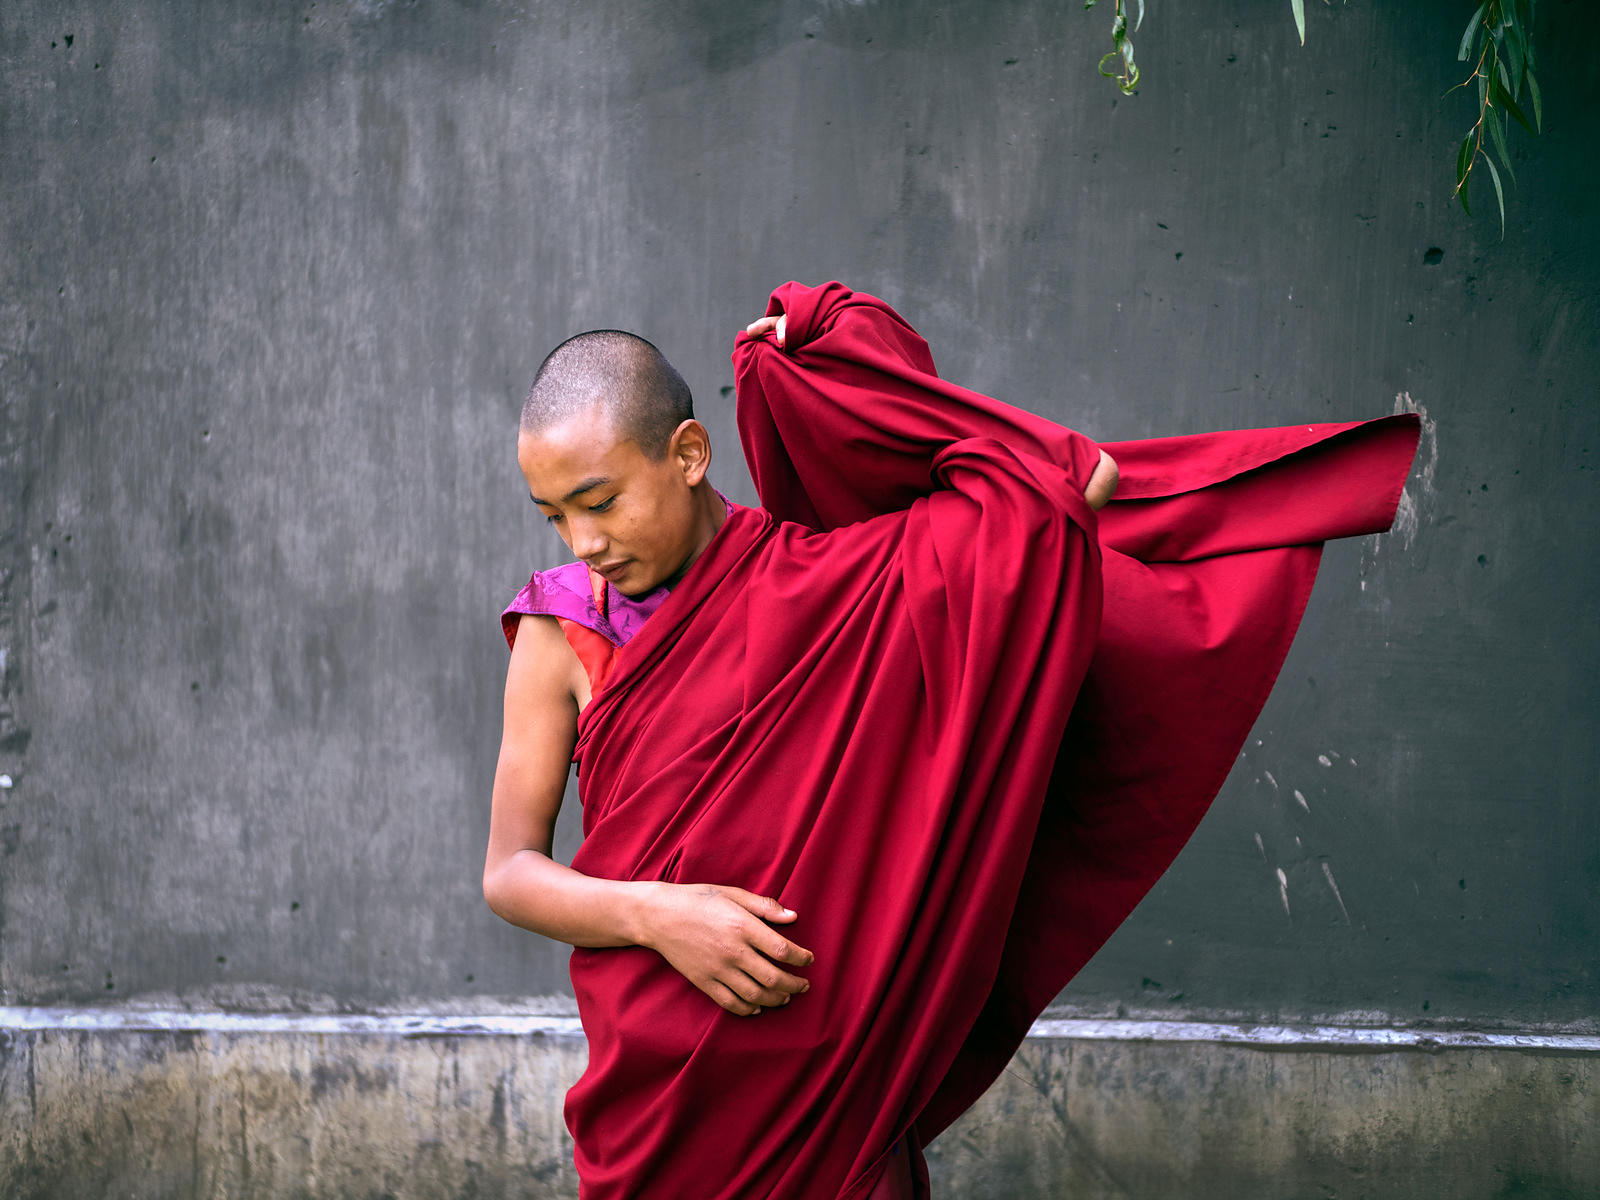 A young Buddhist monk adjusts his robe. This photograph was shot in a monastery in Bhutan